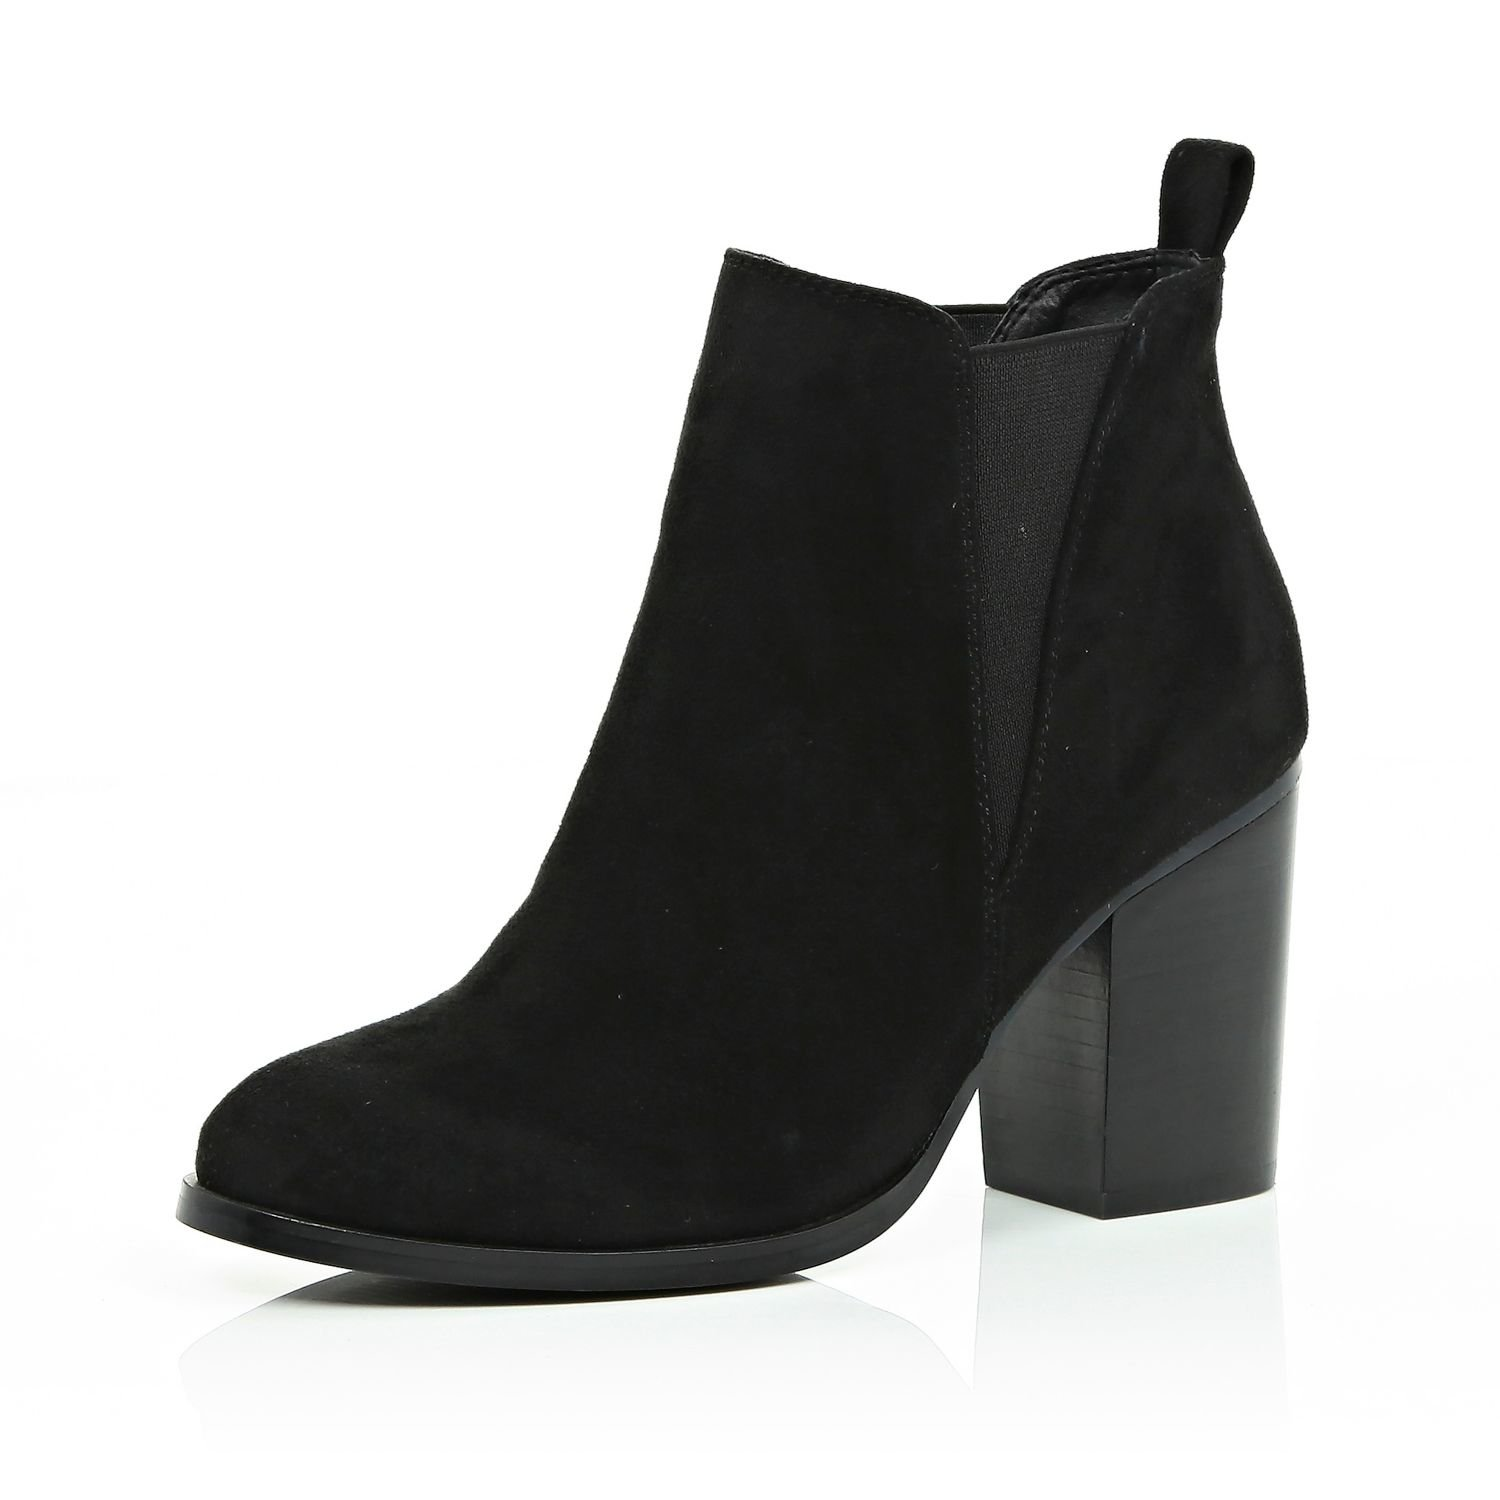 a9615a74cb7f4 River Island Black Heeled Chelsea Boots in Black - Lyst